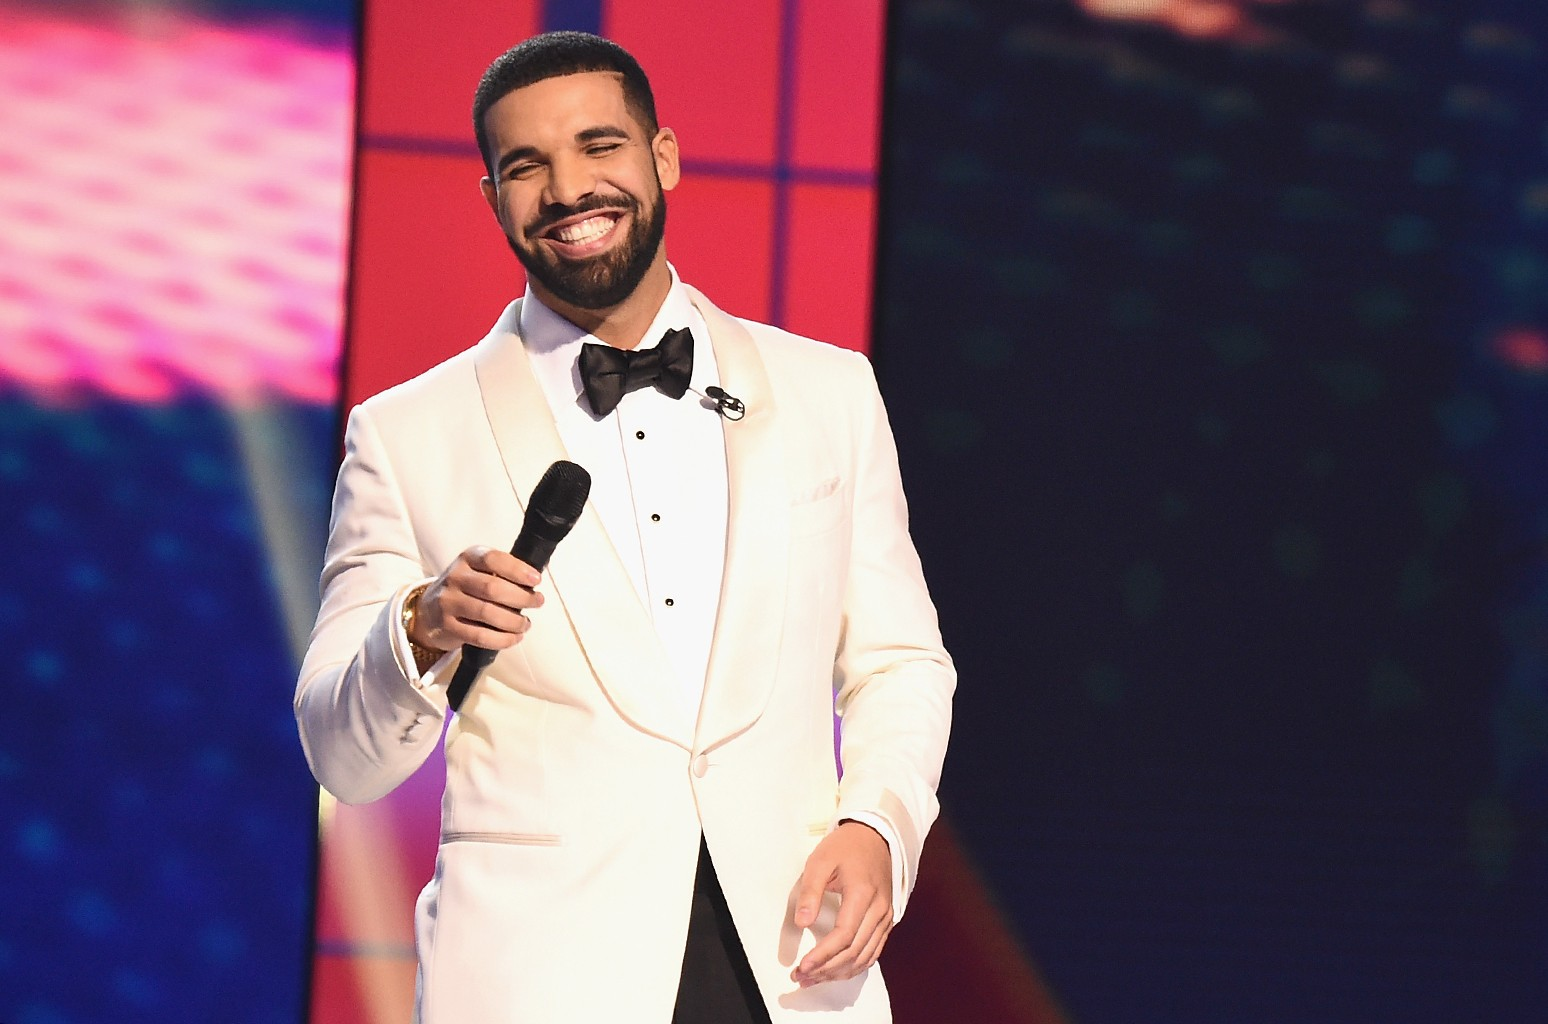 Drake speaks during the 2017 NBA Awards Live On TNT on June 26, 2017 in New York City.